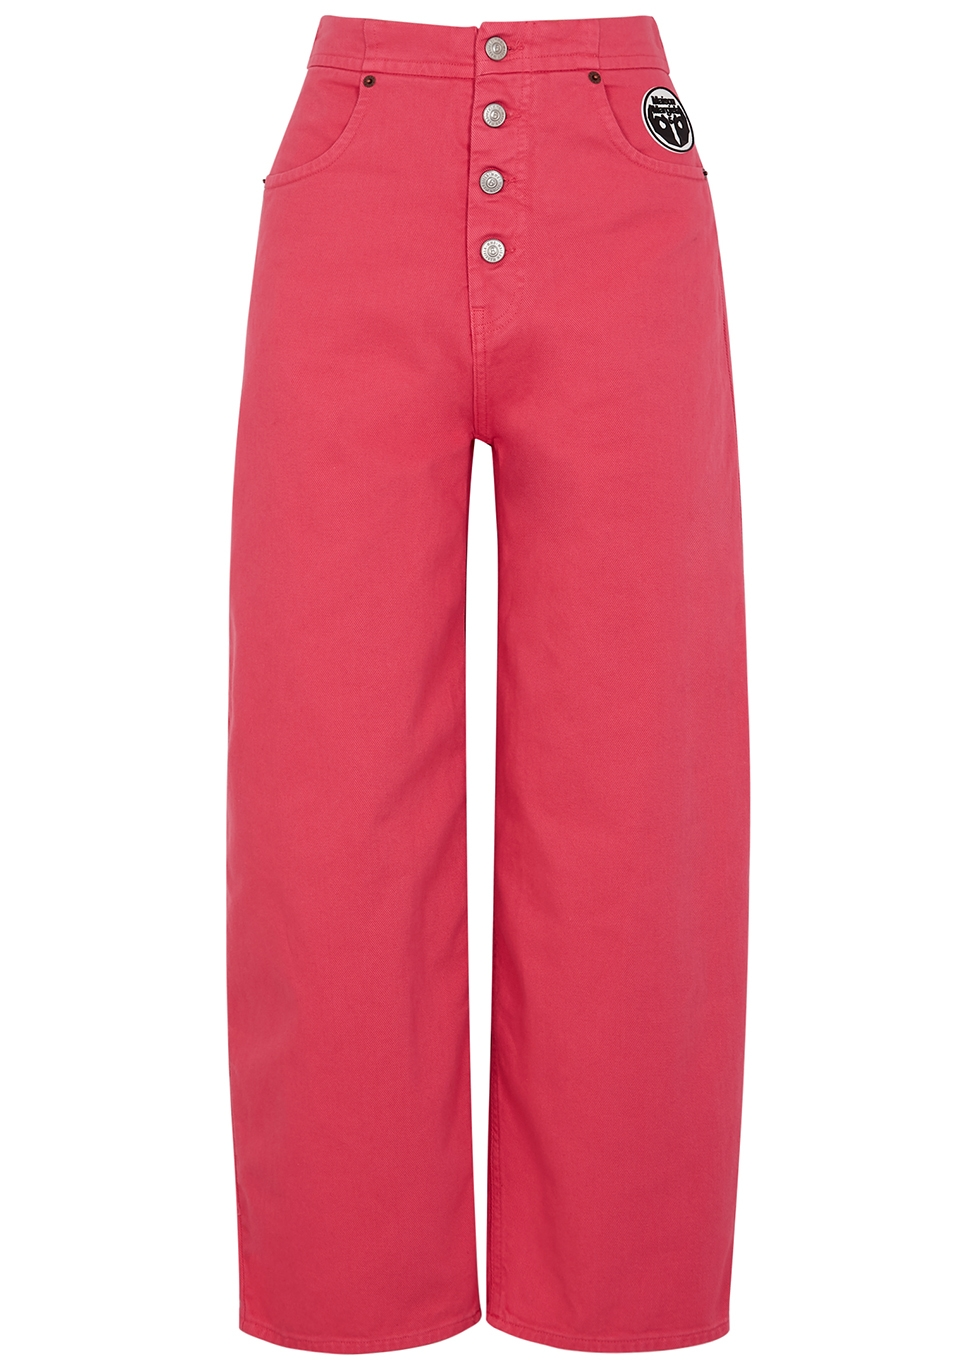 Pink wide-leg jeans